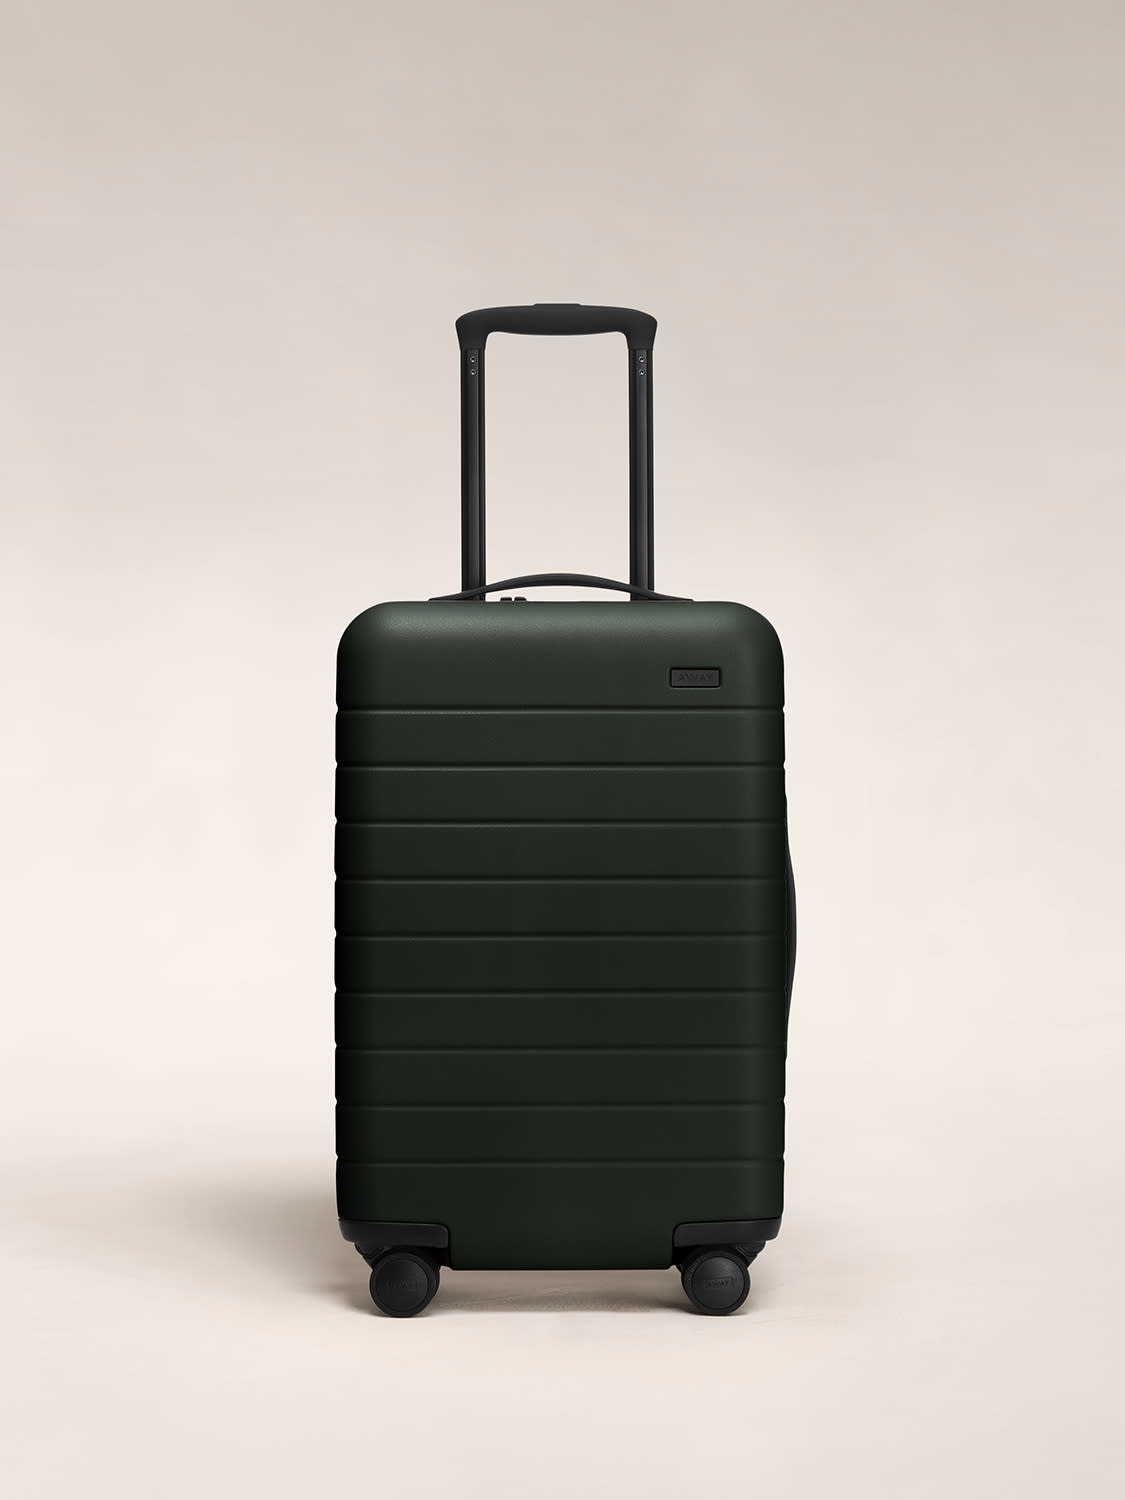 The Carry-On in Green